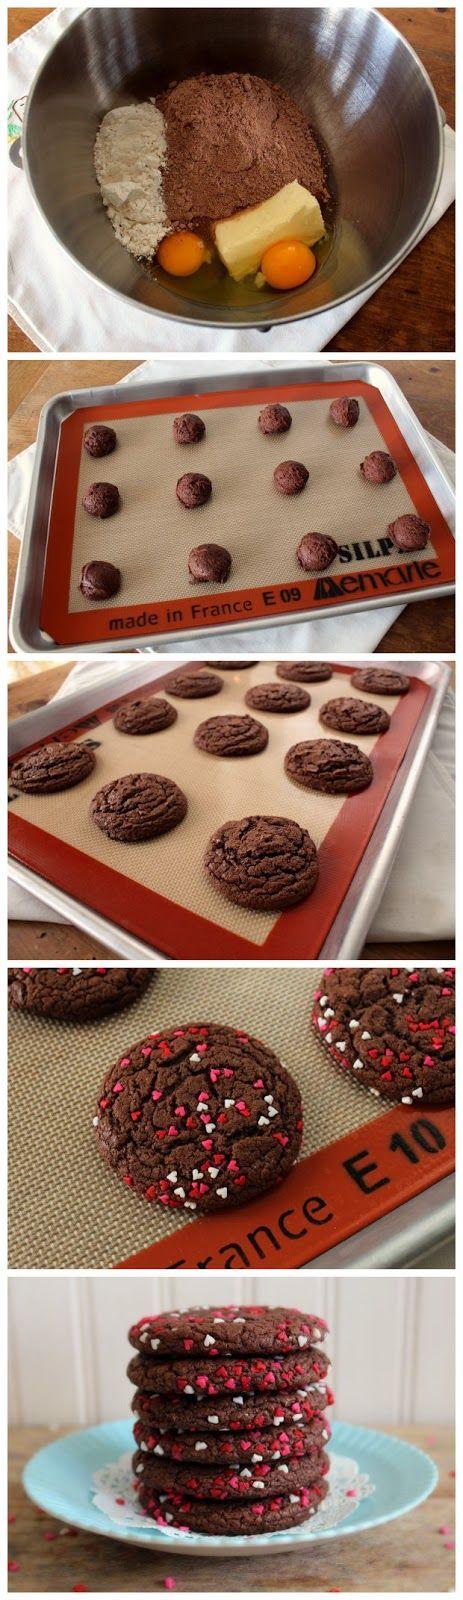 Easy Cake Mix Cookies. I made these tonight and they are so good!